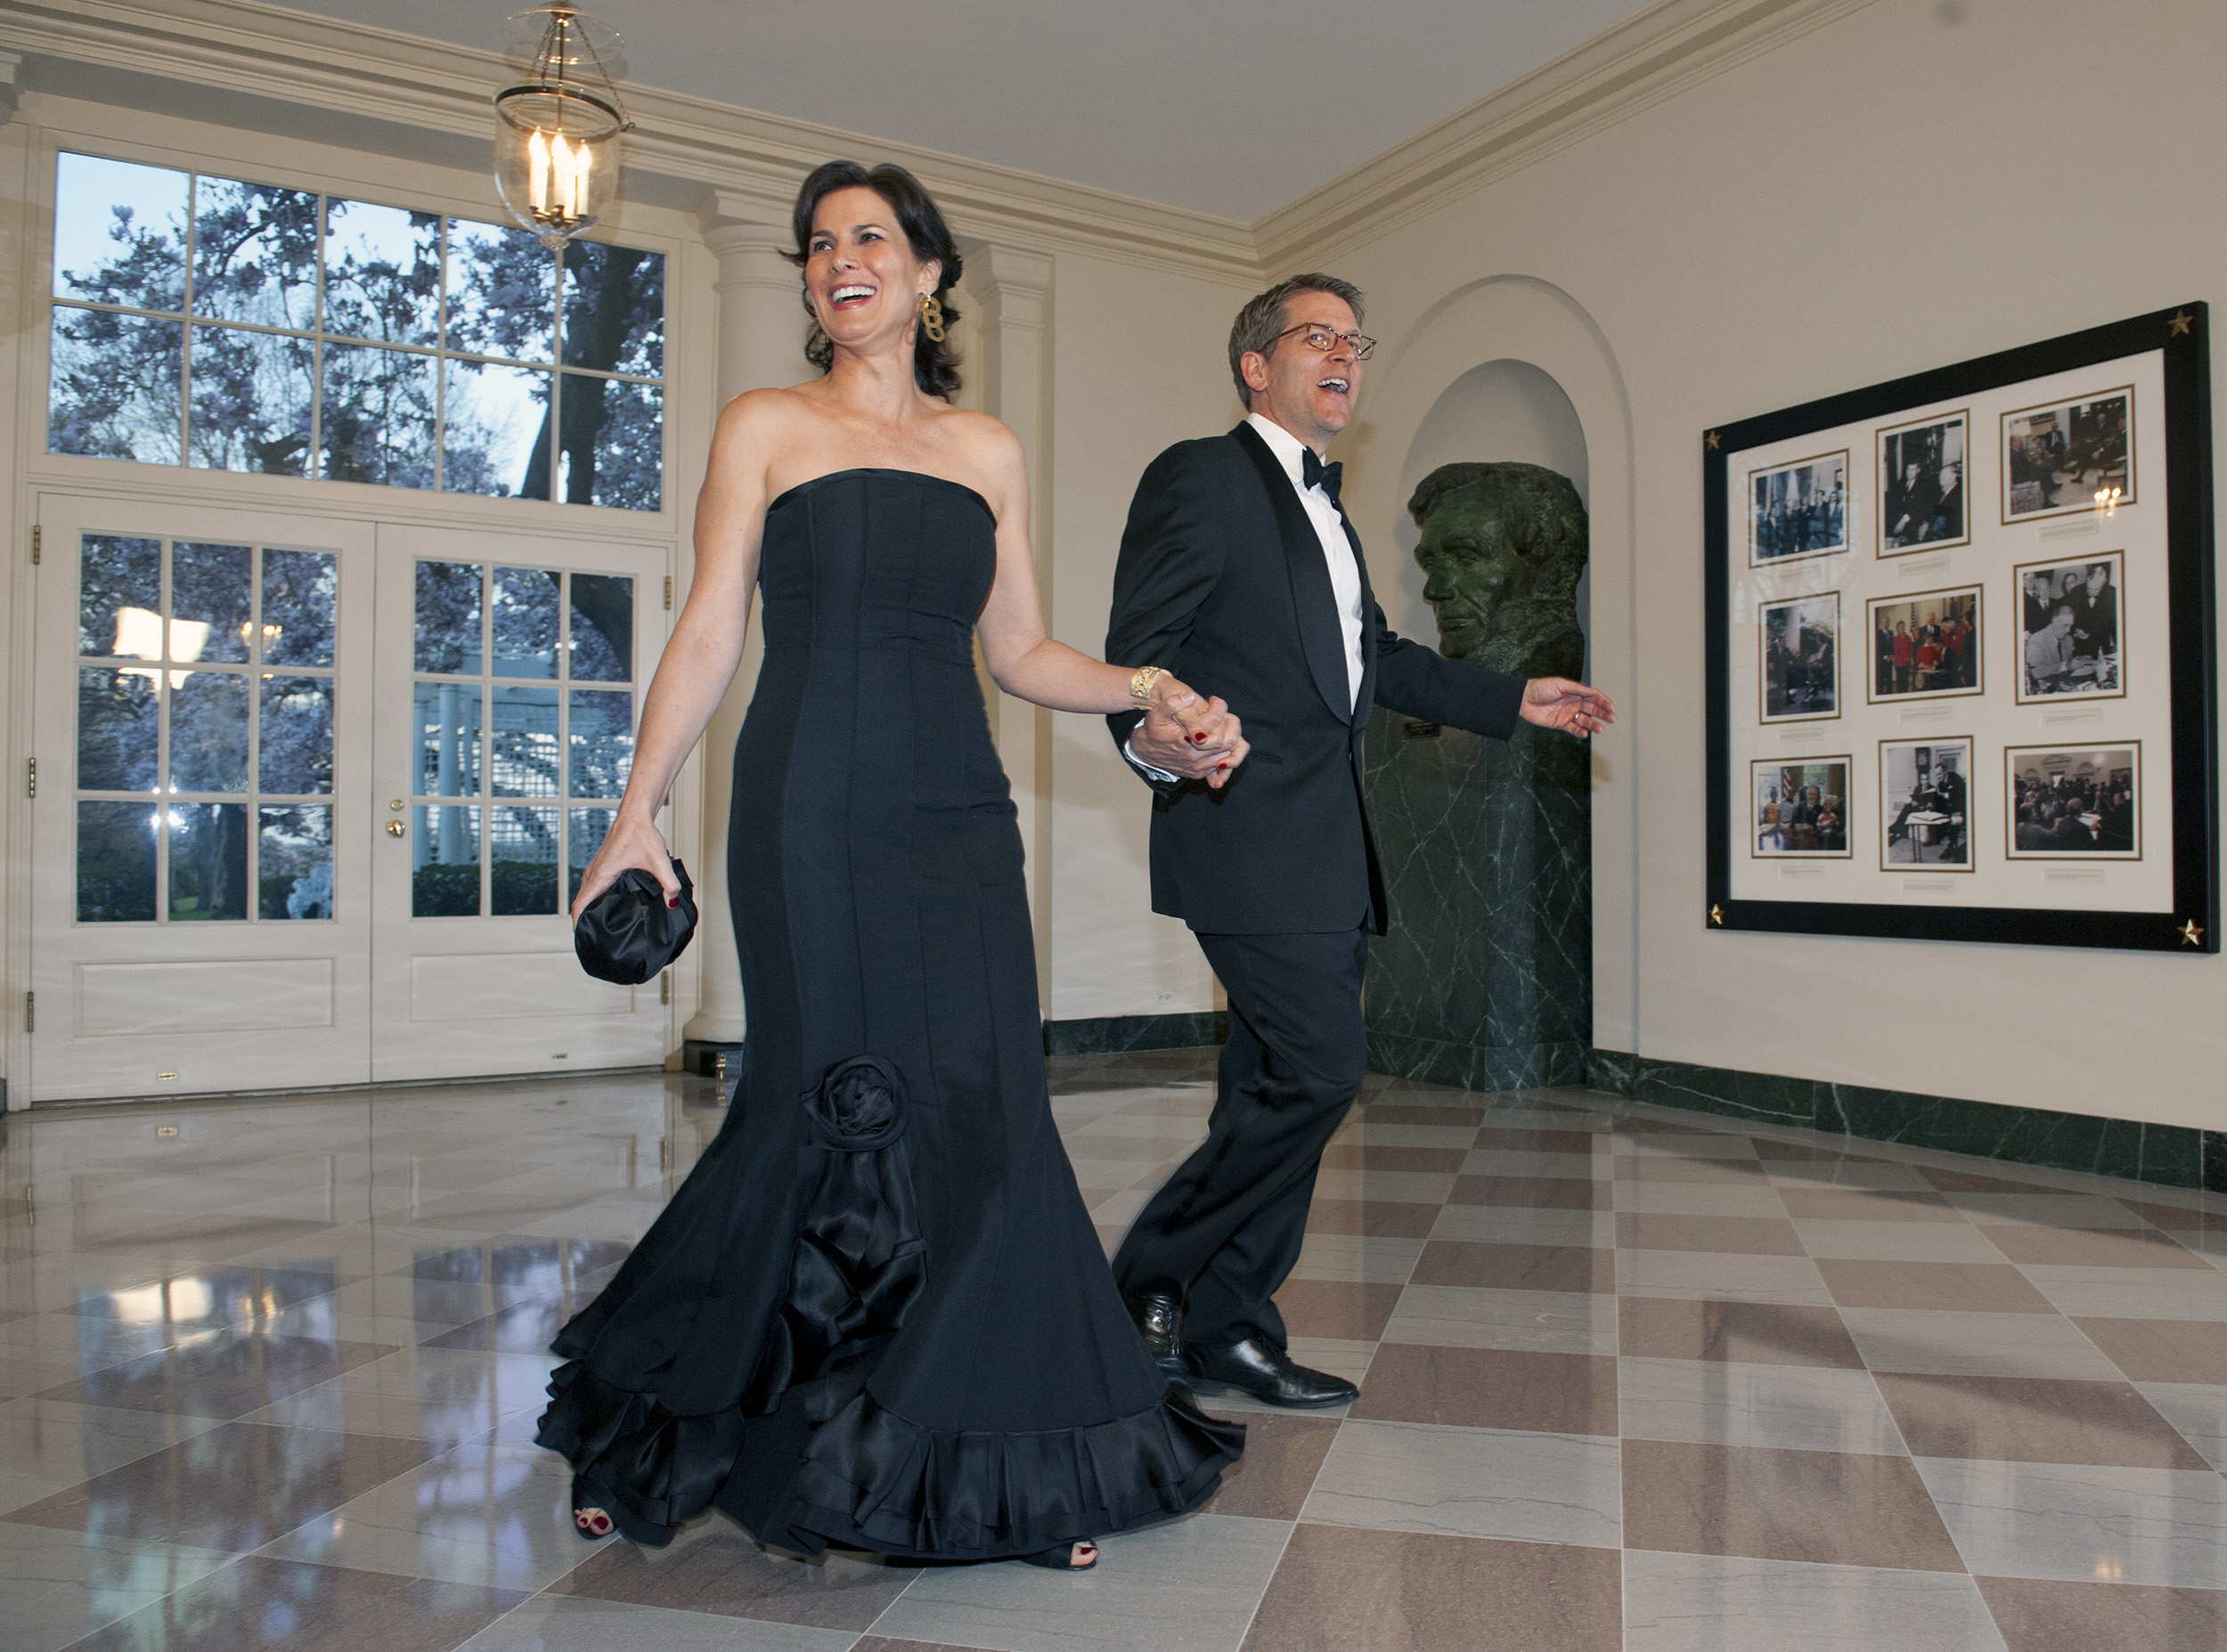 White House press secretary Jay Carney and ABC reporter Claire Shipman arrive for the State dinner for the Prime Minister of Great Britain at the White House on March, 14, 2012 in Washington.